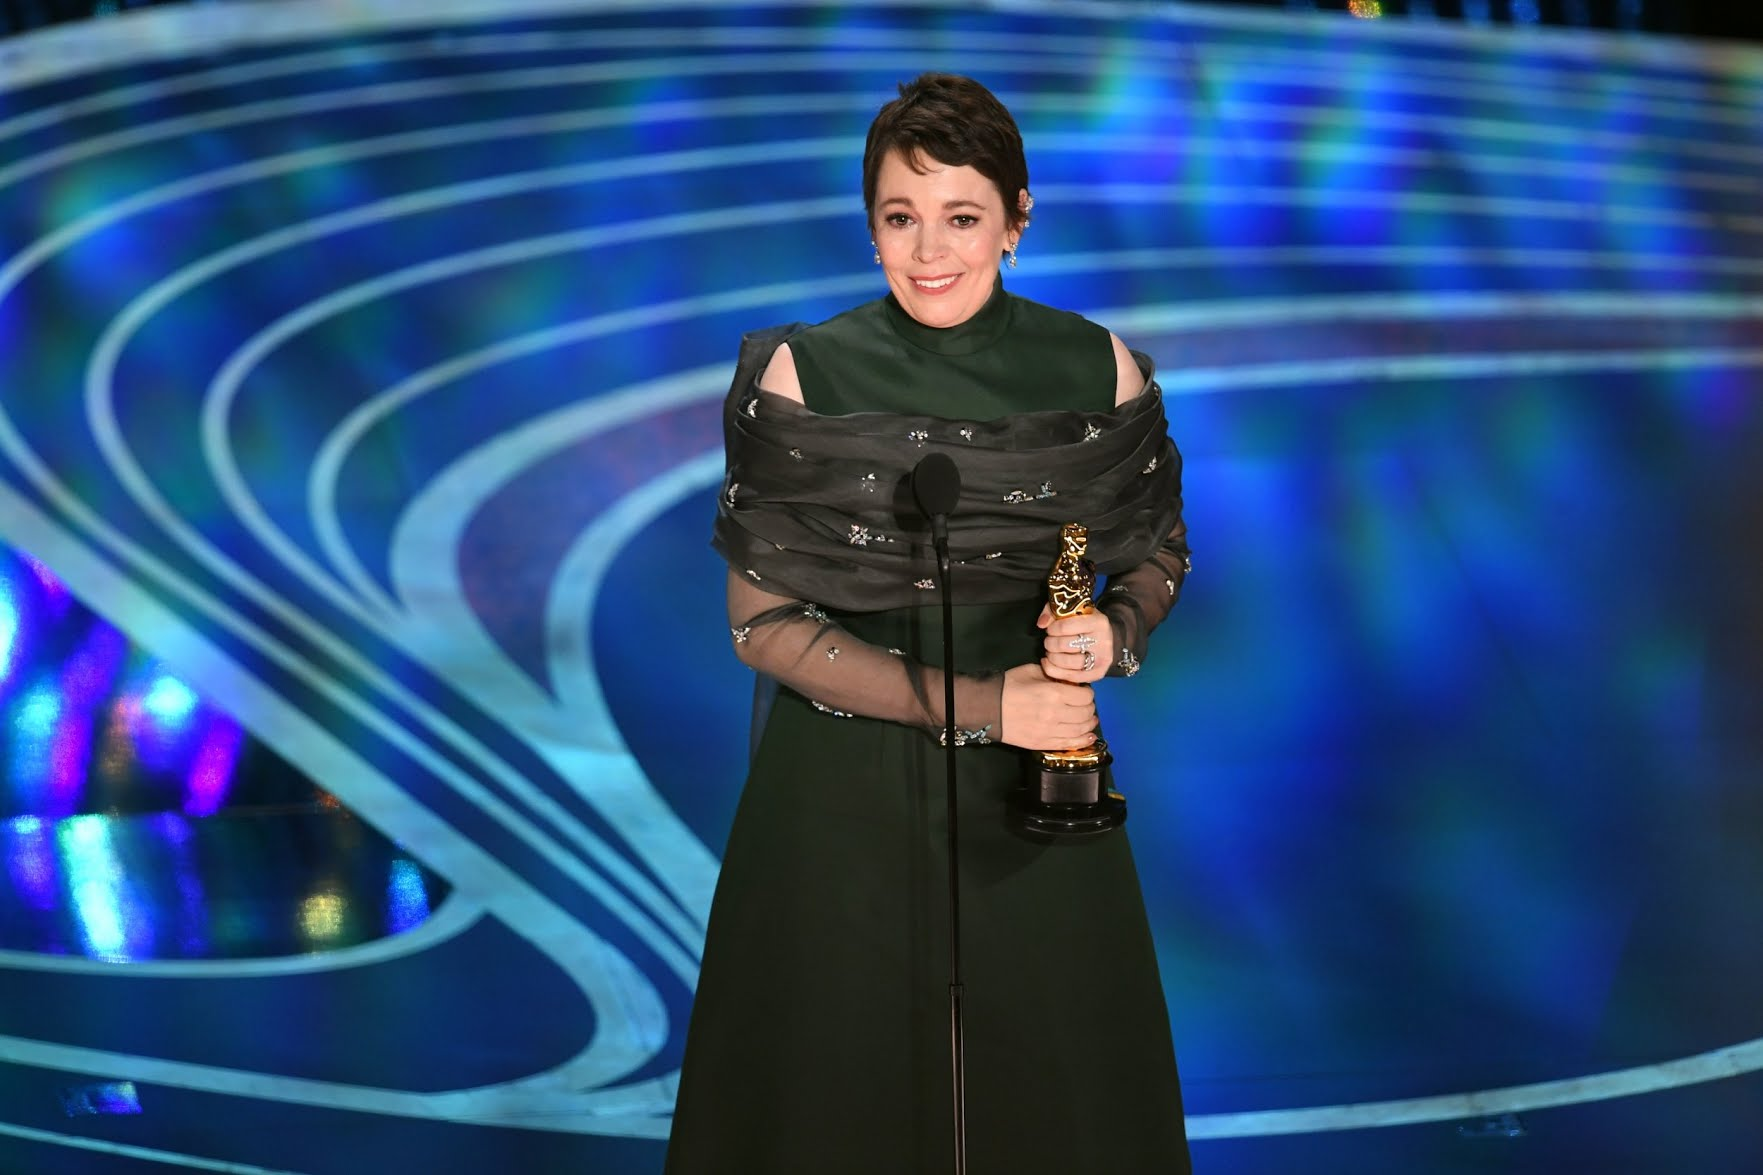 Olivia Colman accepts the Actress in a Leading Role award for The Favourite Getty Images